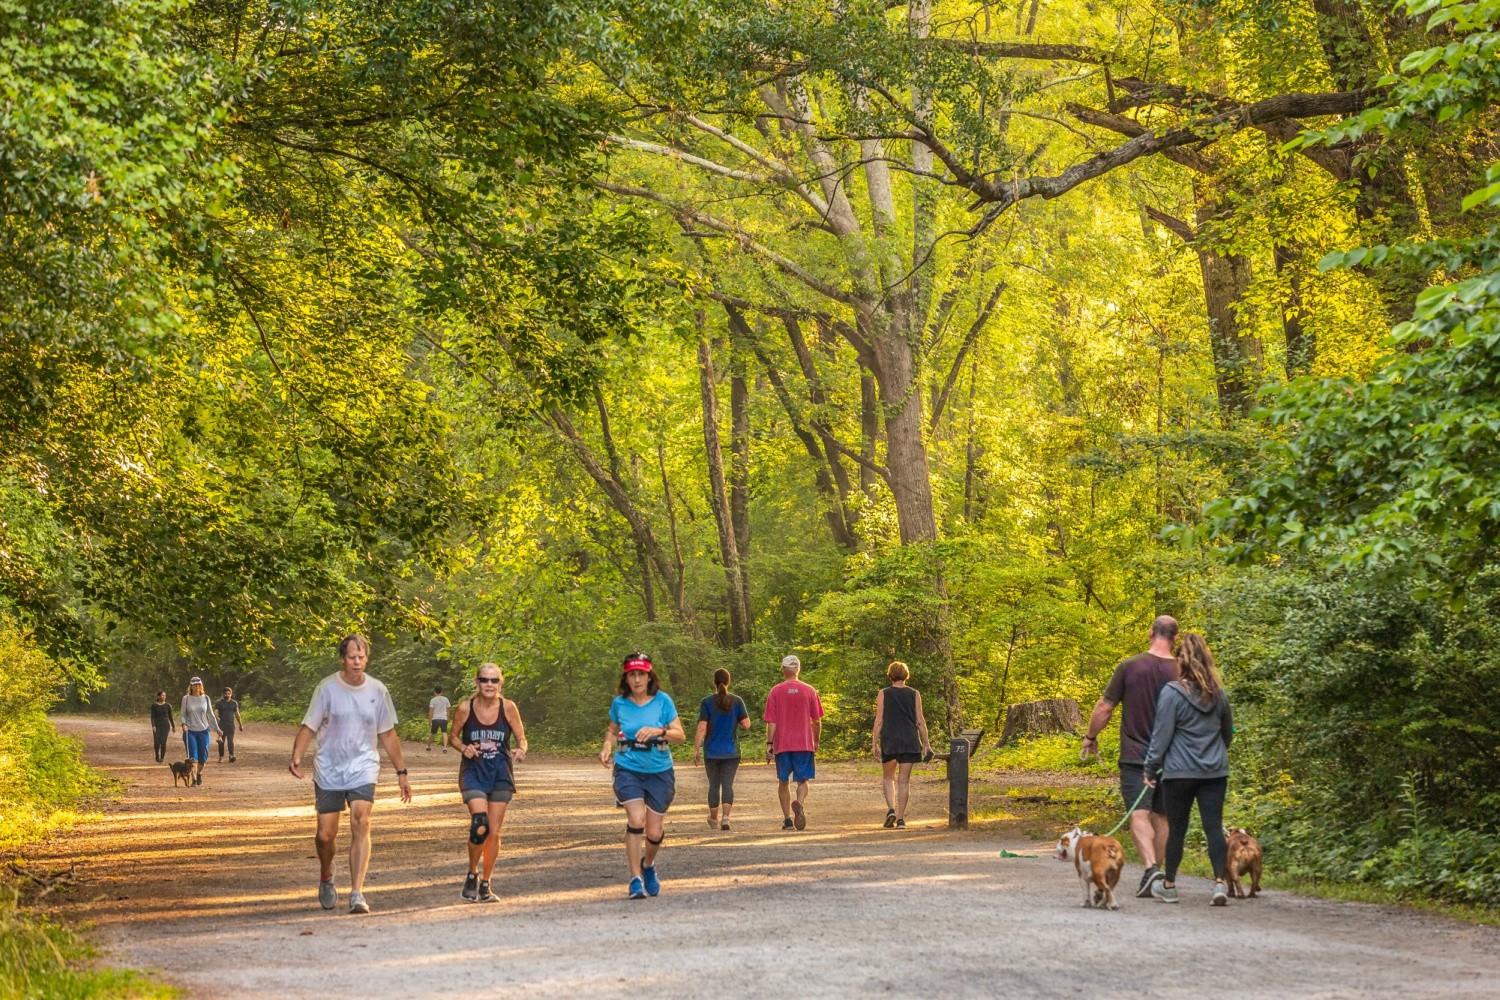 The Cochran Shoals loop offers views of the Chattahoochee River between the trees, while the wooded trails frequently cross creeks and traverse the rim of small valleys.